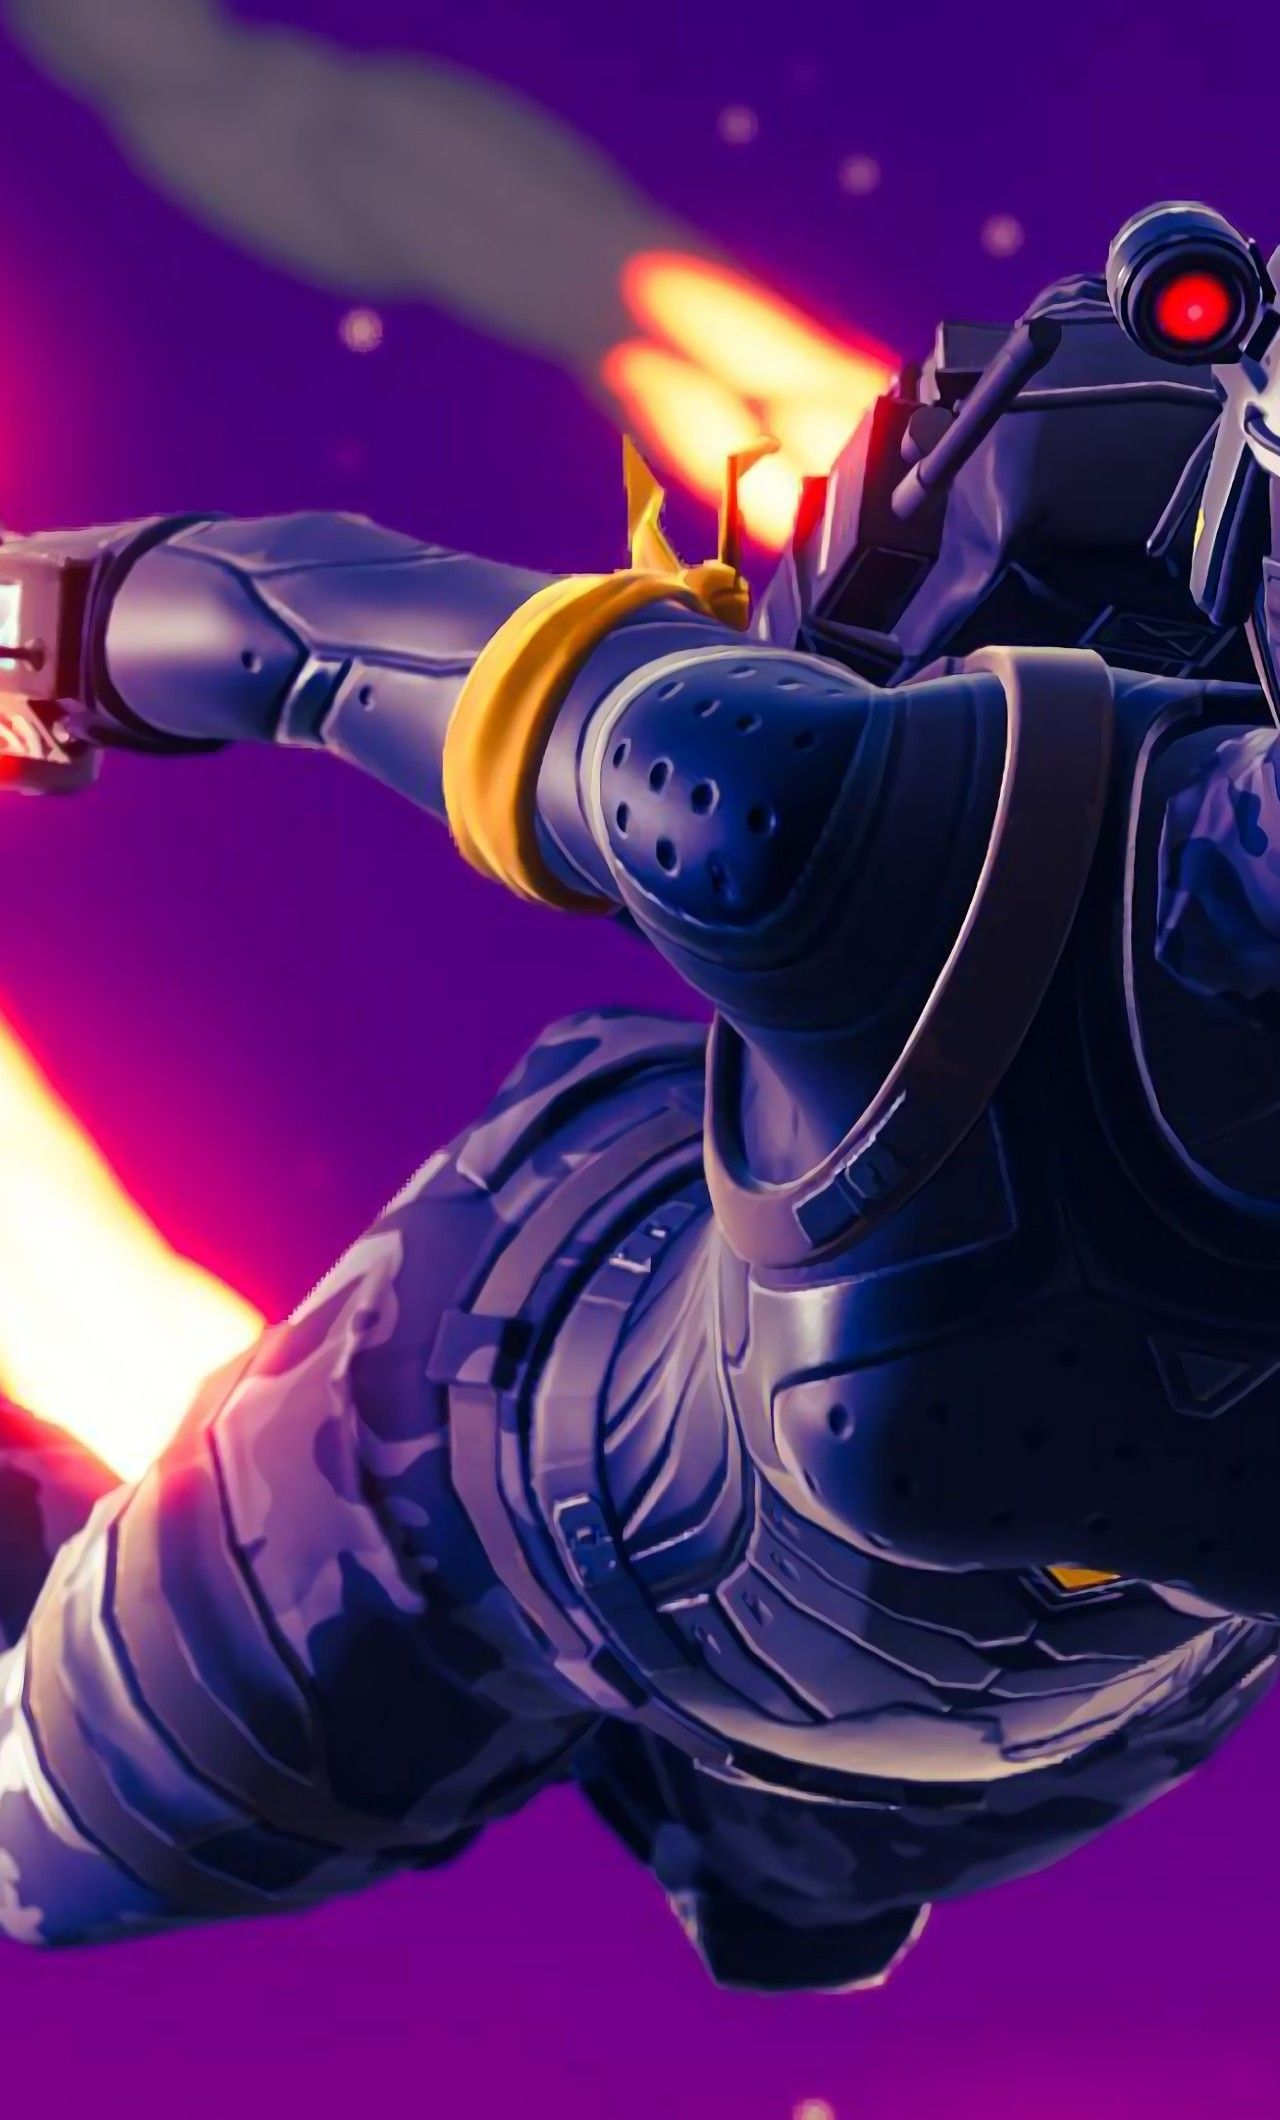 HD Fortnite wallpapers | Cool Fortnite Wallpapers, Background HD* iPhone, Android, 4K in 2019 ...